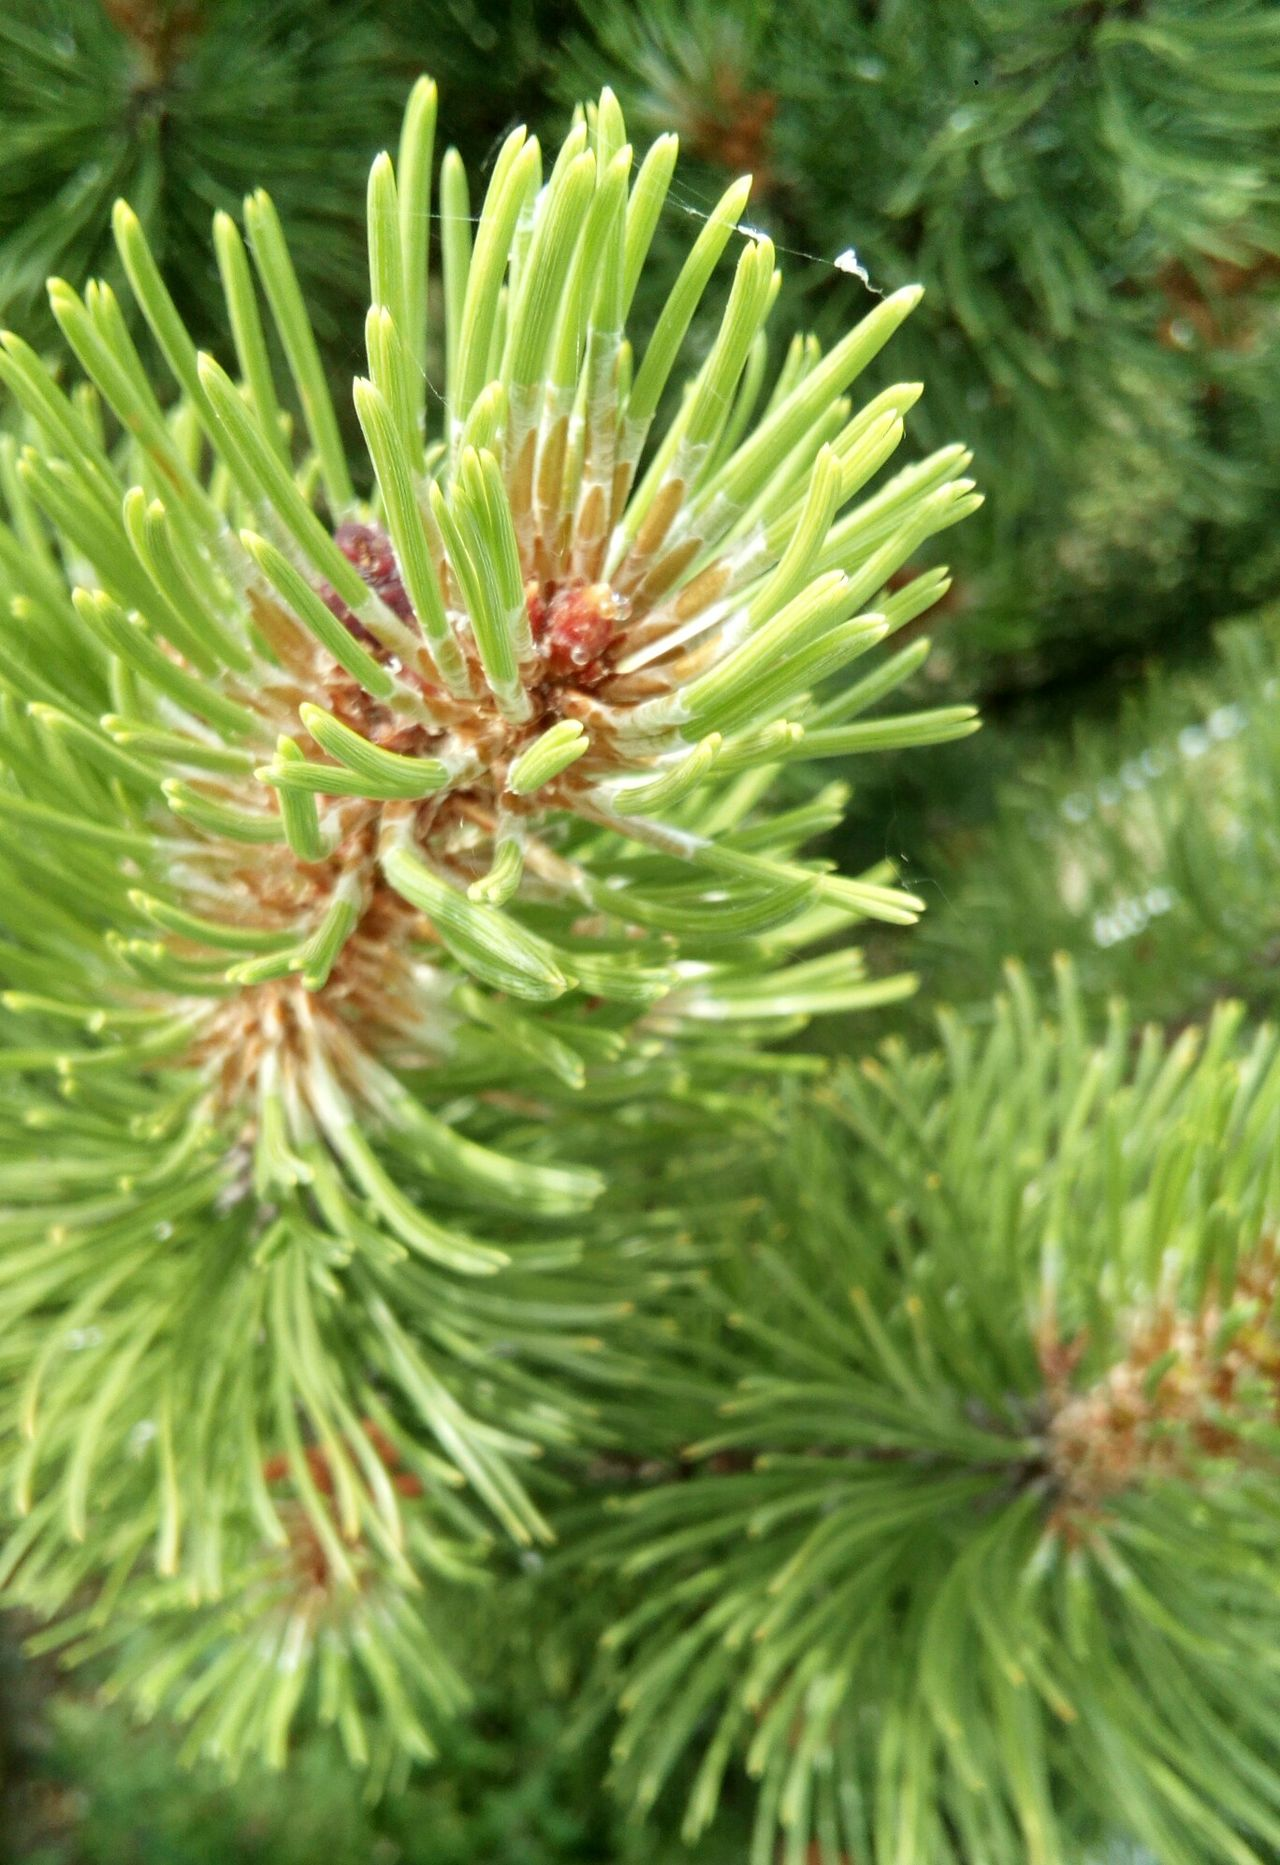 Green Color Nature Plant Needle - Plant Part No People Pine Tree Outdoors Freshness Tree Tannenzweig Tannennadeln Tannenzweige Tree Pflanzen Plant Freshness Needle Beauty In Nature Green Color Nature Tannen